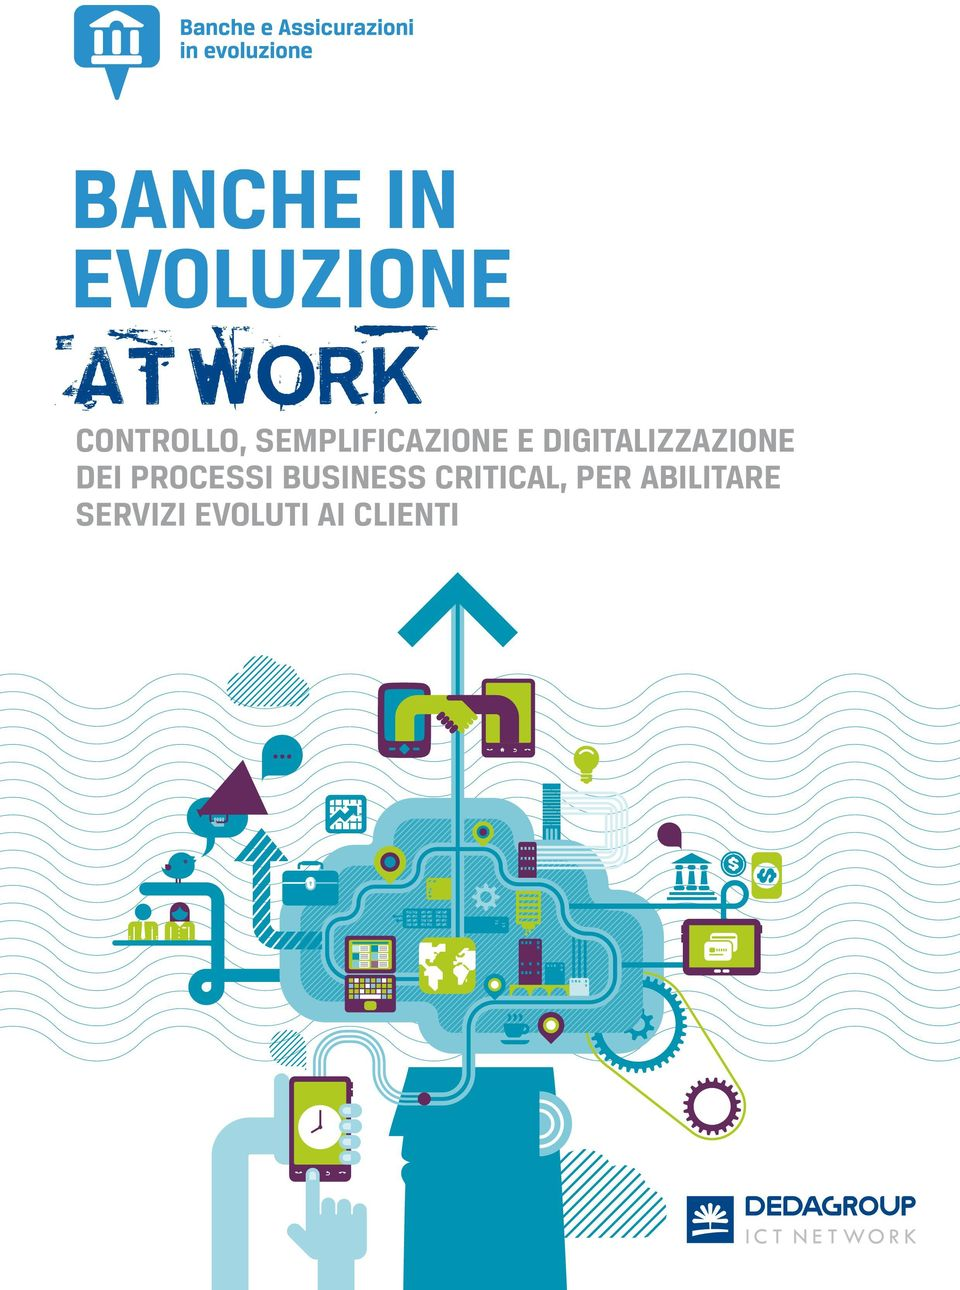 dei processi business critical,